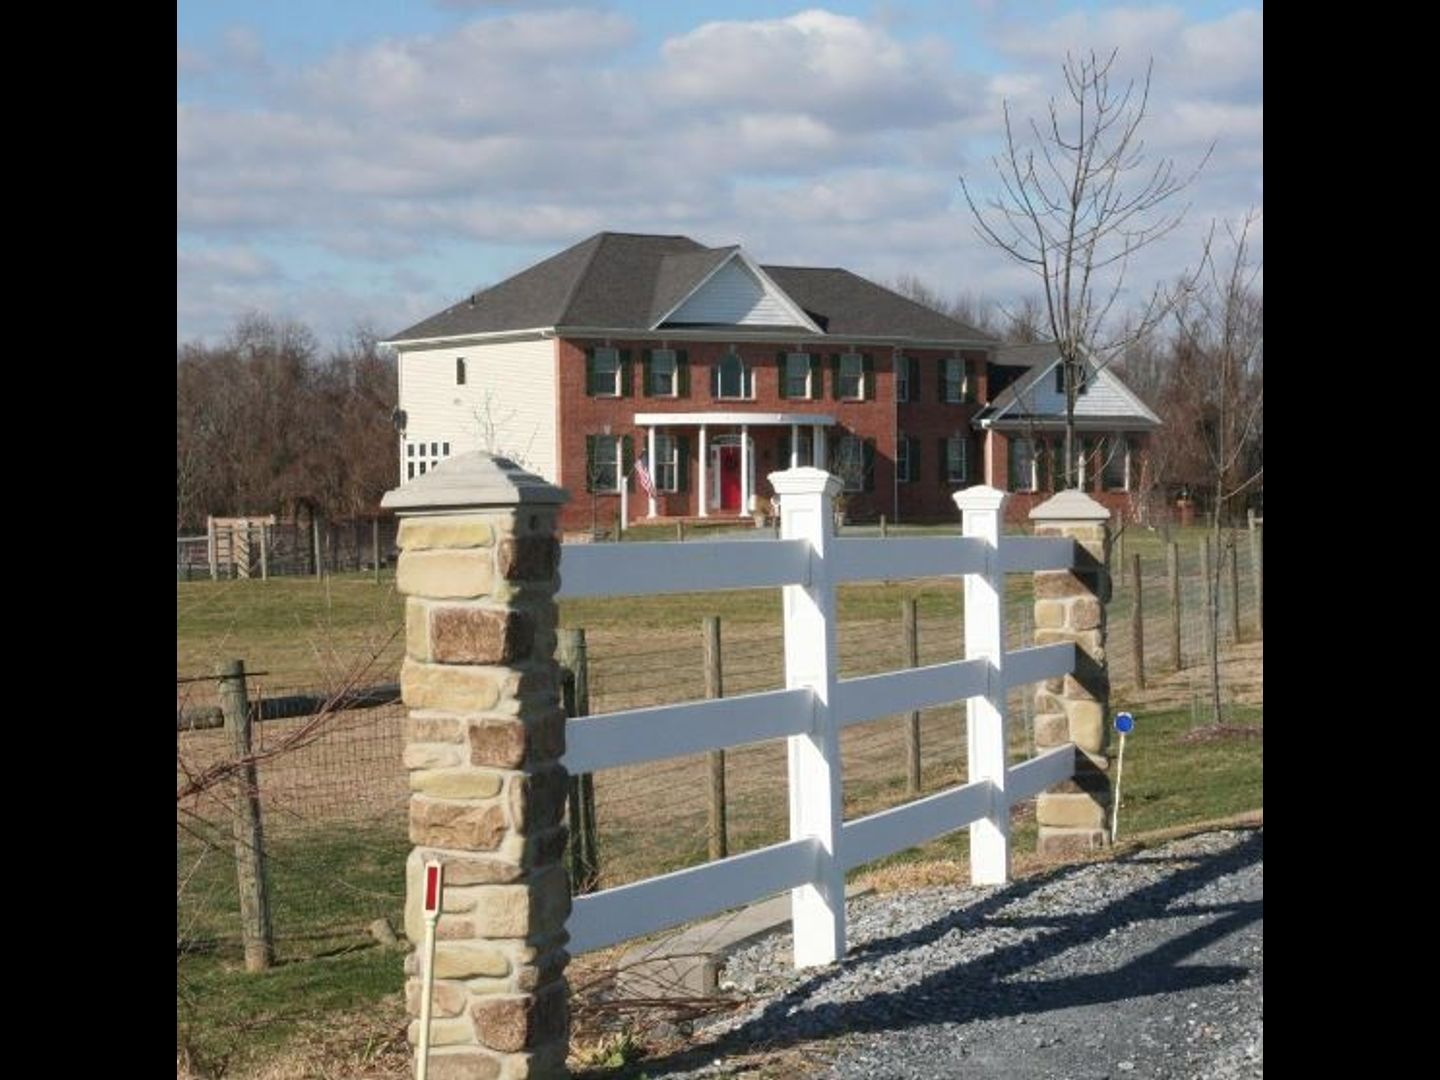 A house with a fence at The Candle House Inn.